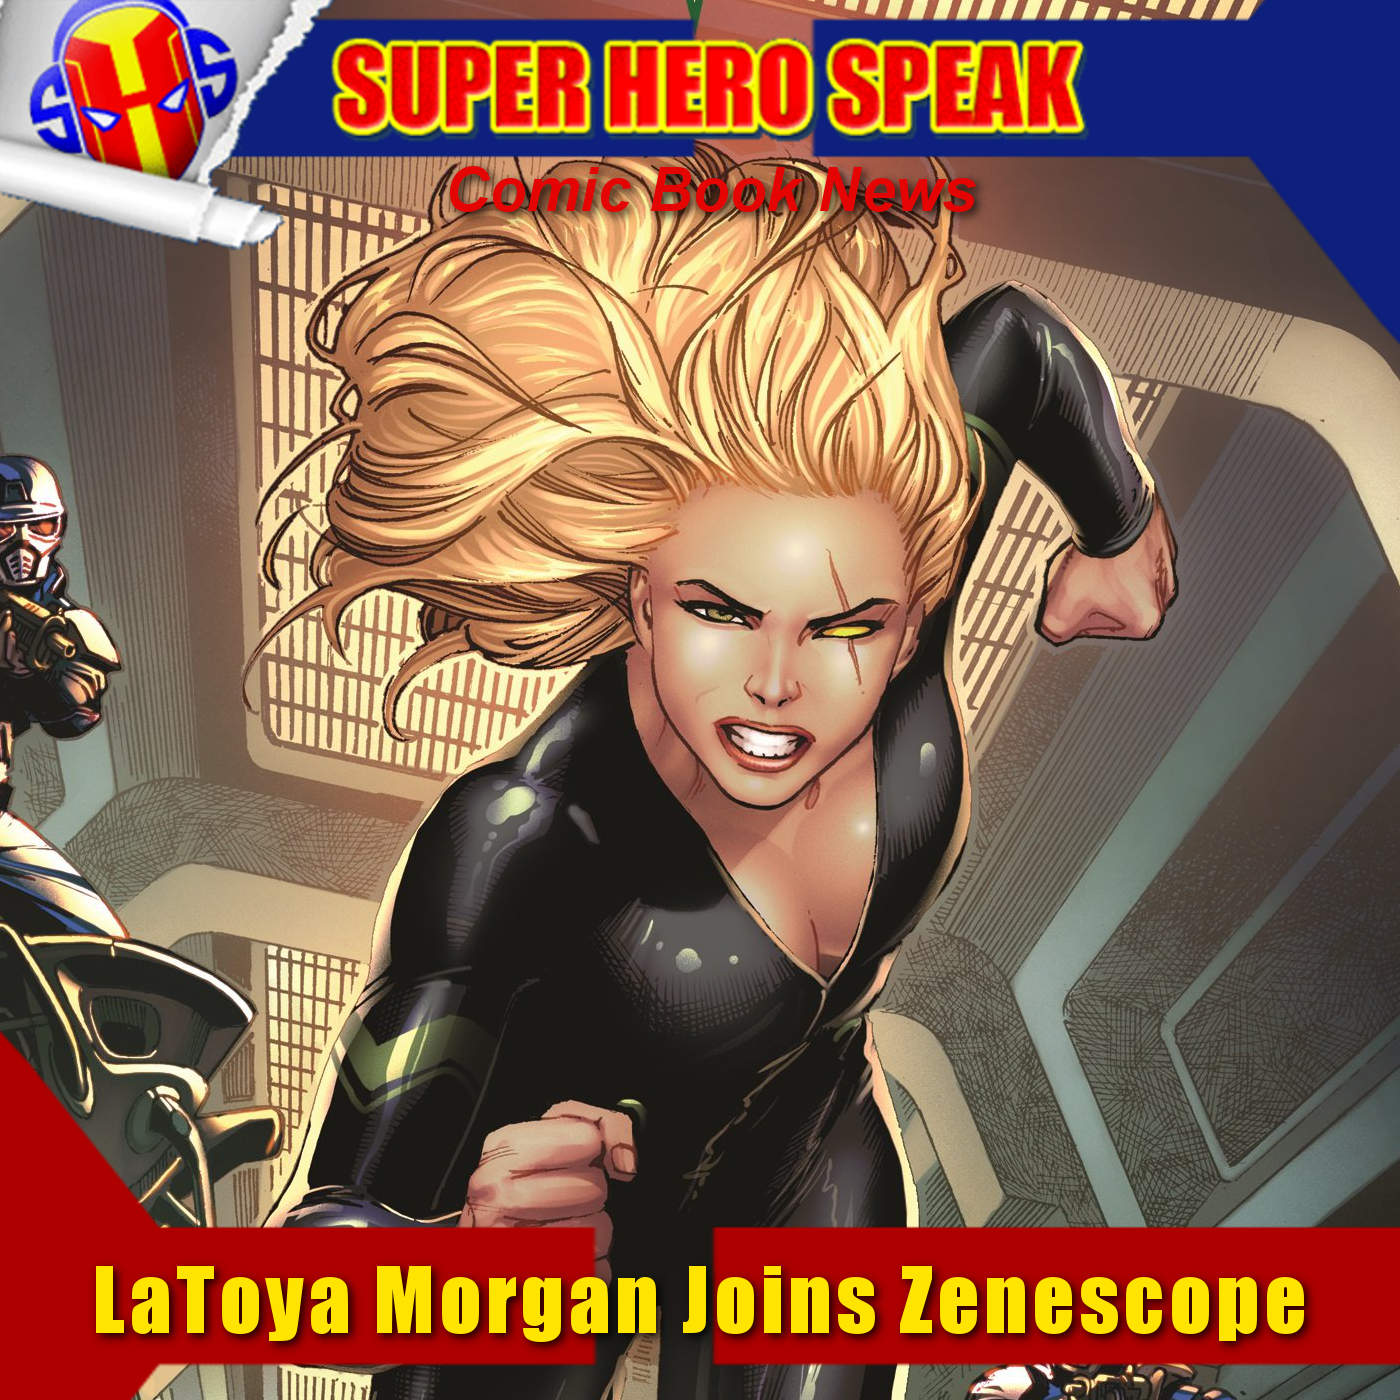 SHSNews: LaToya Morgan Joins Zenescope